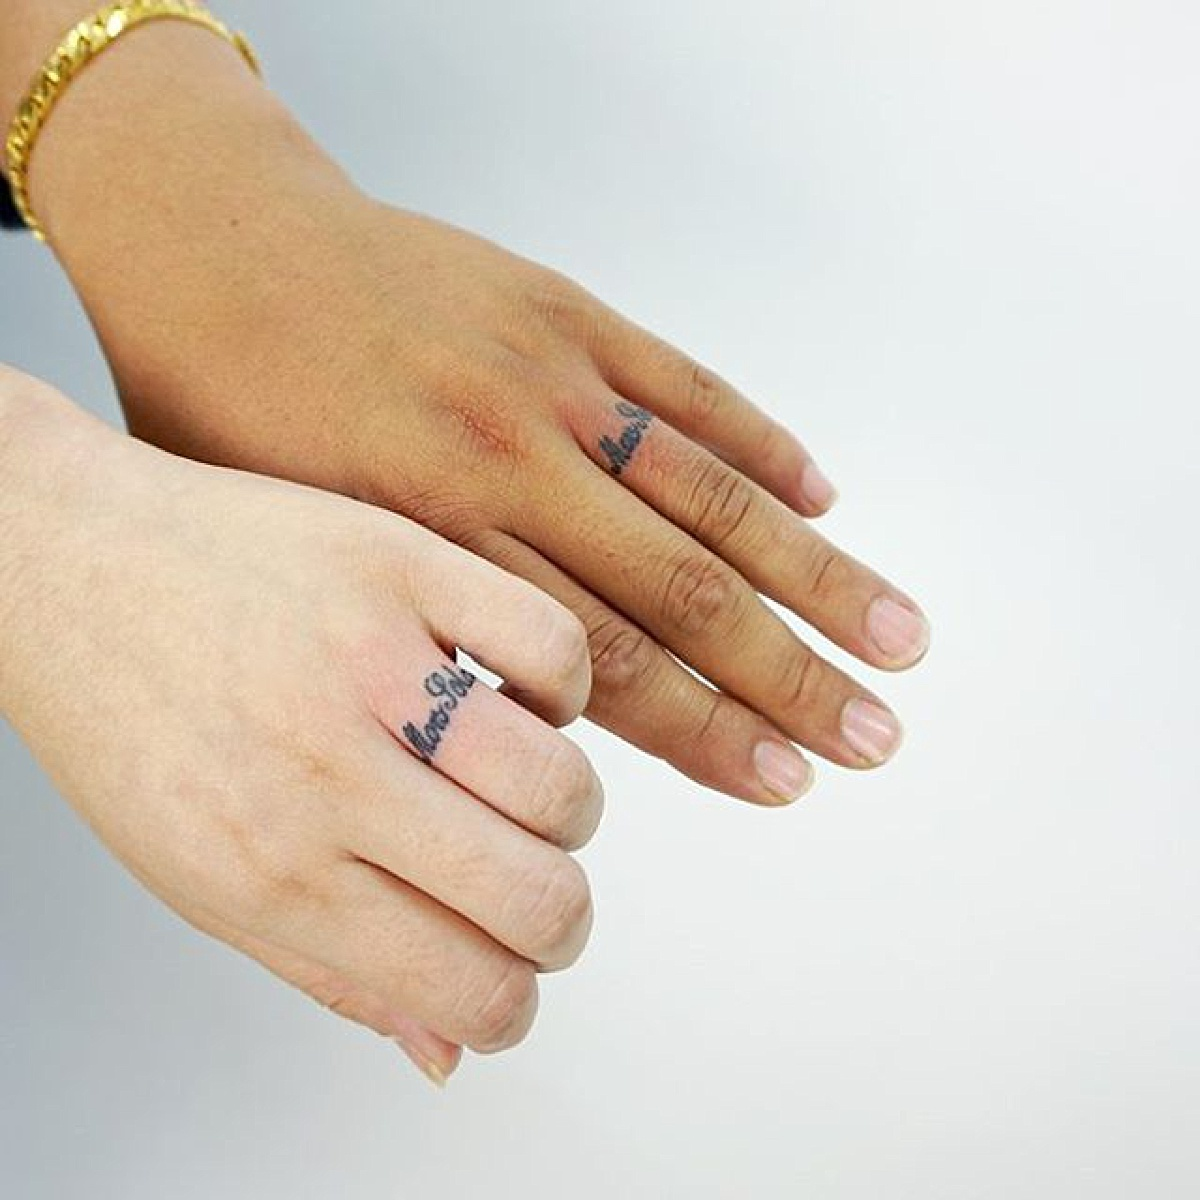 25 wedding ring tattoo ideas that dont suck a practical wedding junglespirit Image collections